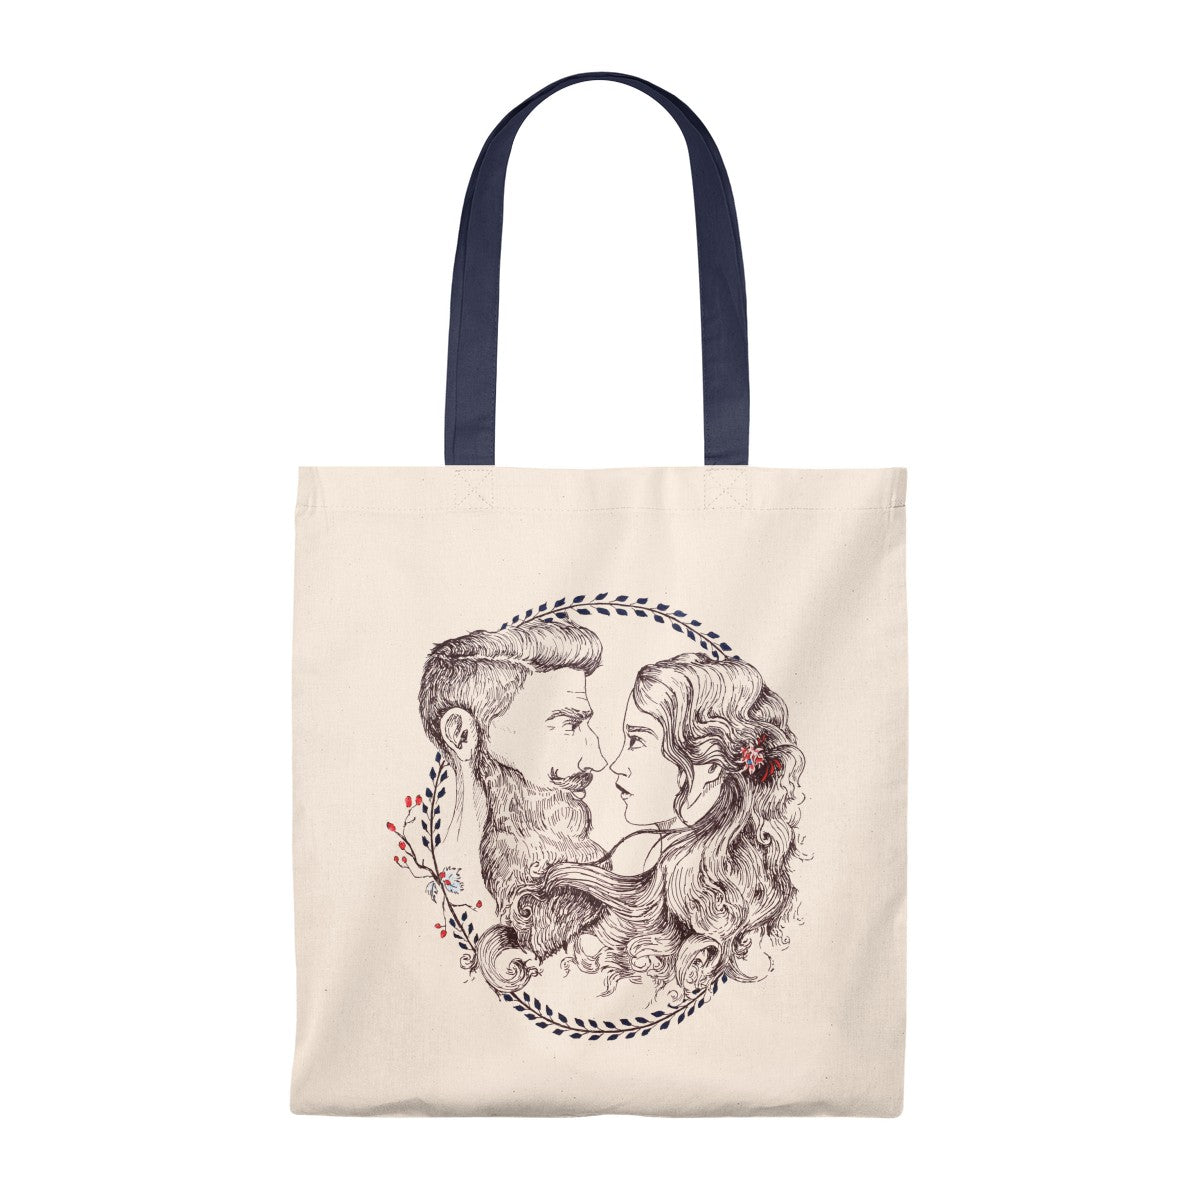 Vintage Tote Bag - Beard and Lady